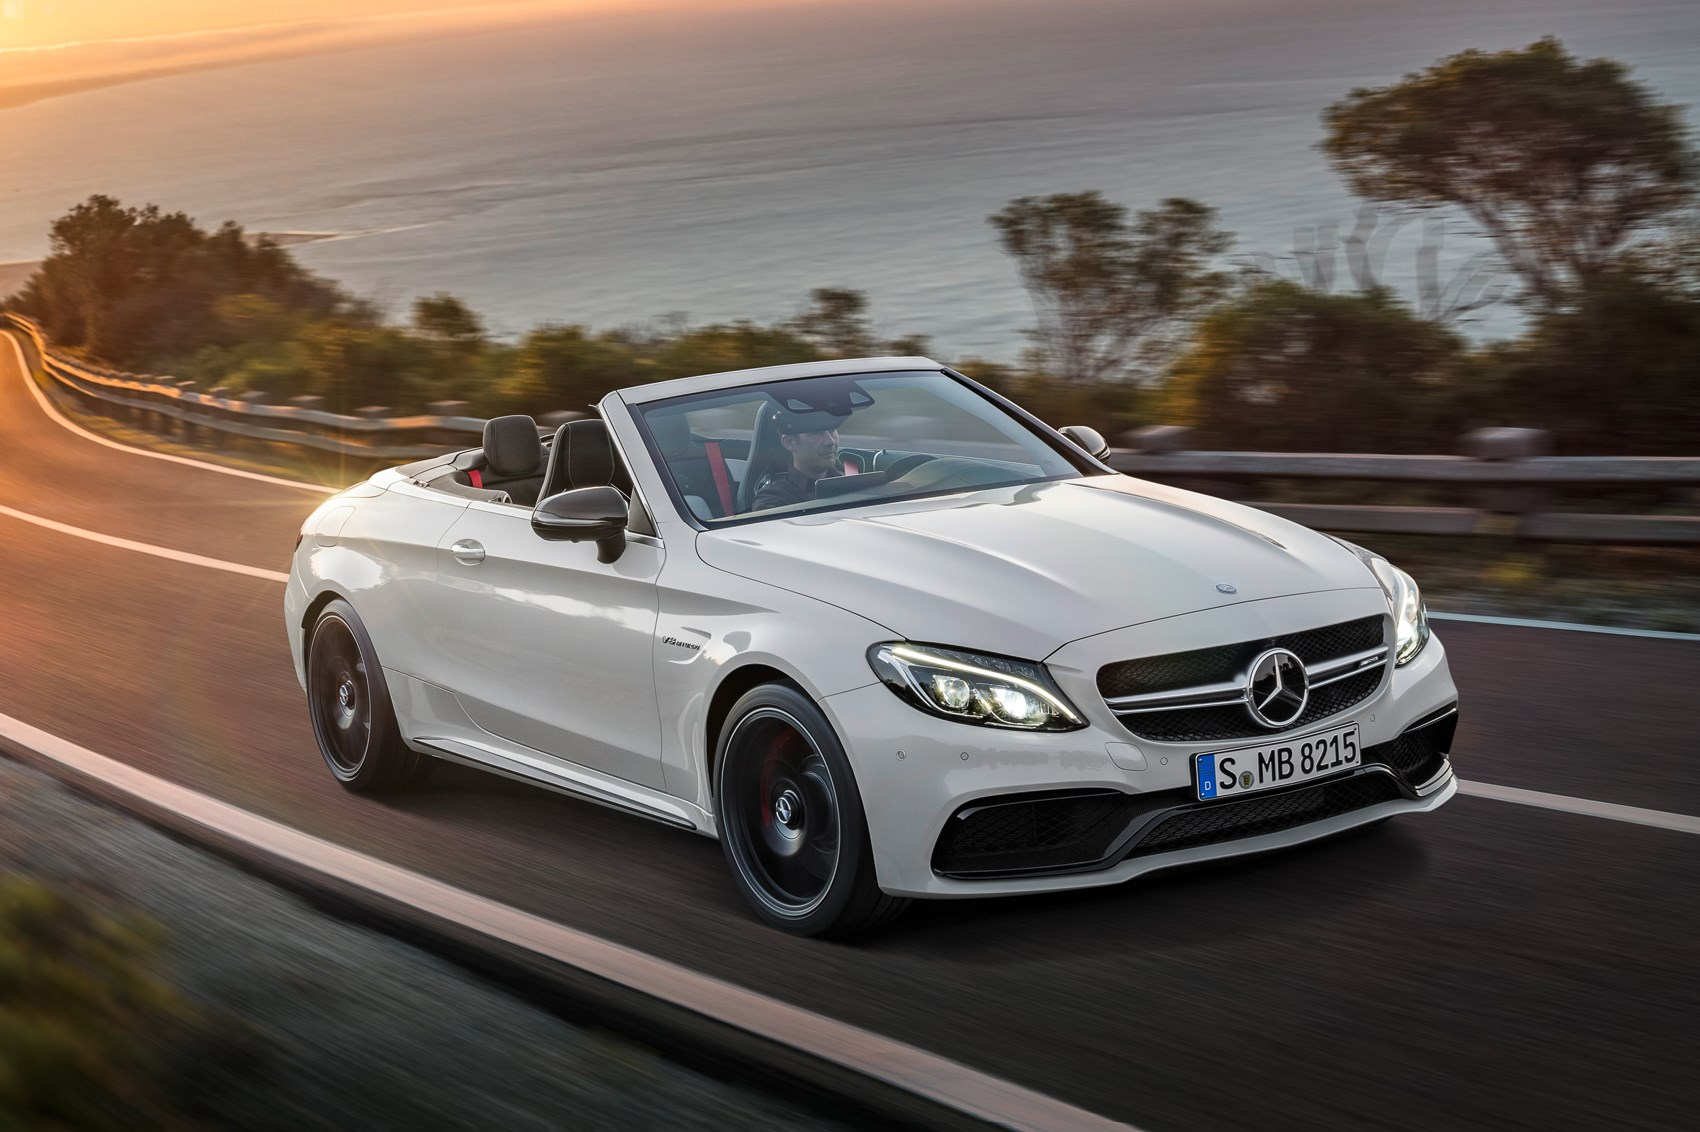 mercedes amg c63 cabriolet revealed at new york 2016 by car magazine. Black Bedroom Furniture Sets. Home Design Ideas